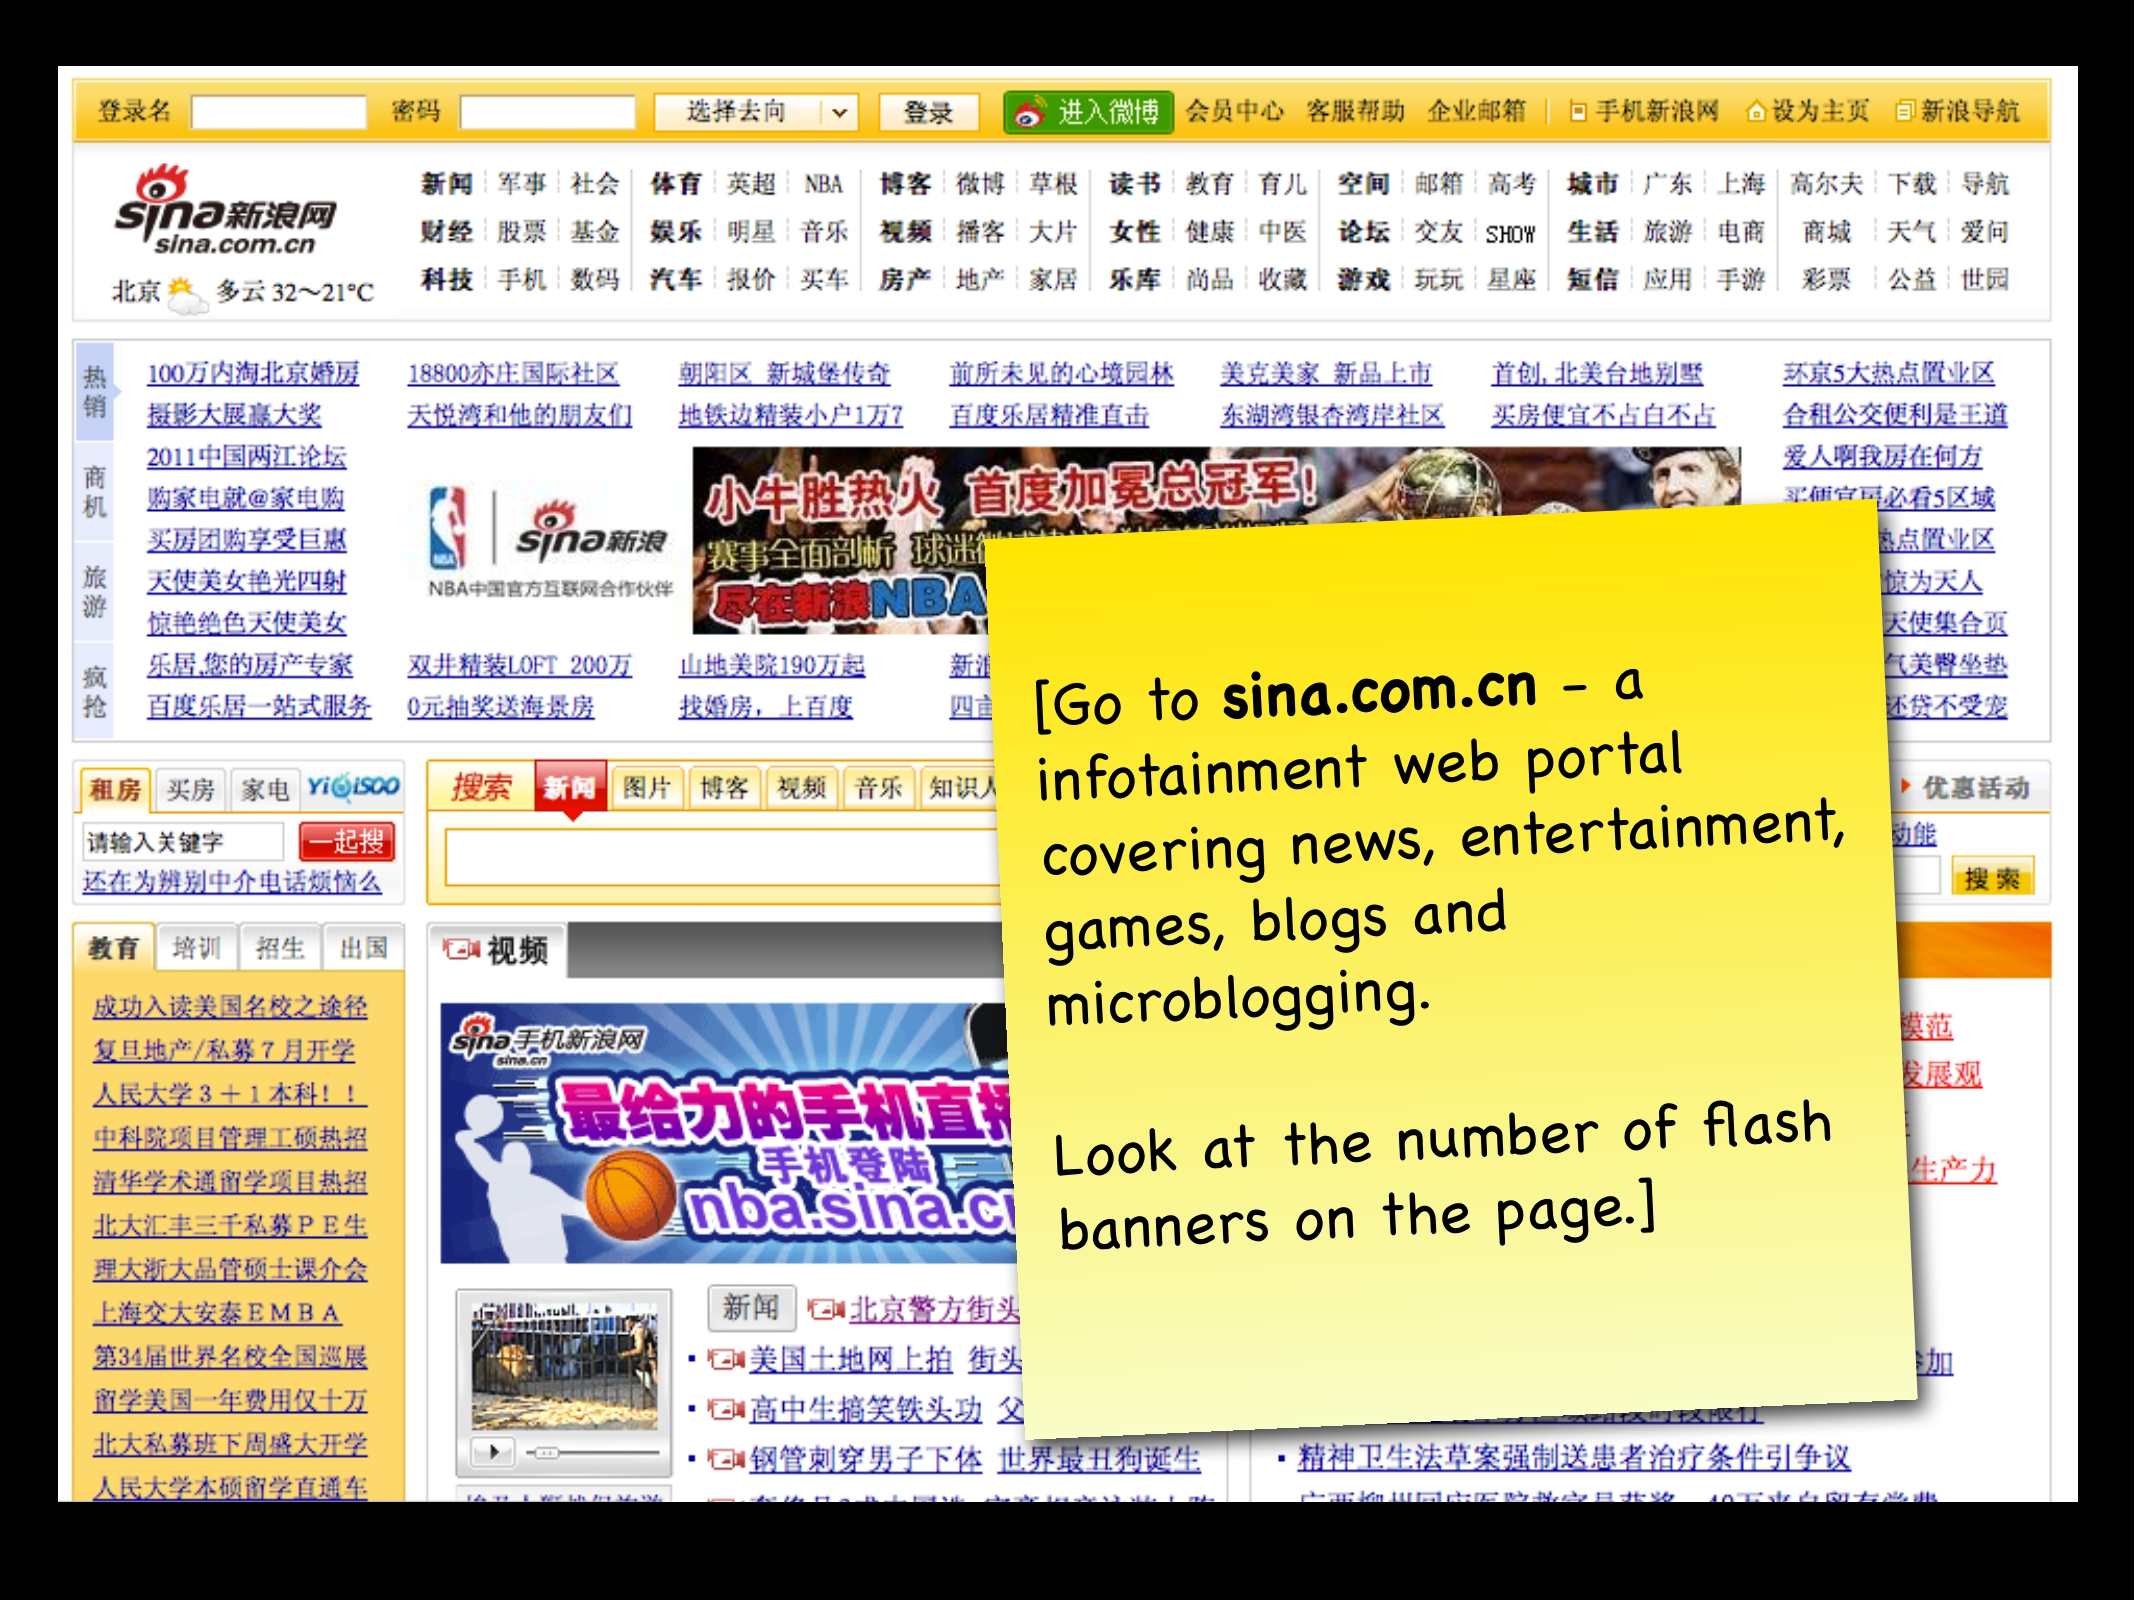 Chinese Web Design Patterns 2011_pages-to-jpg-0033.jpg